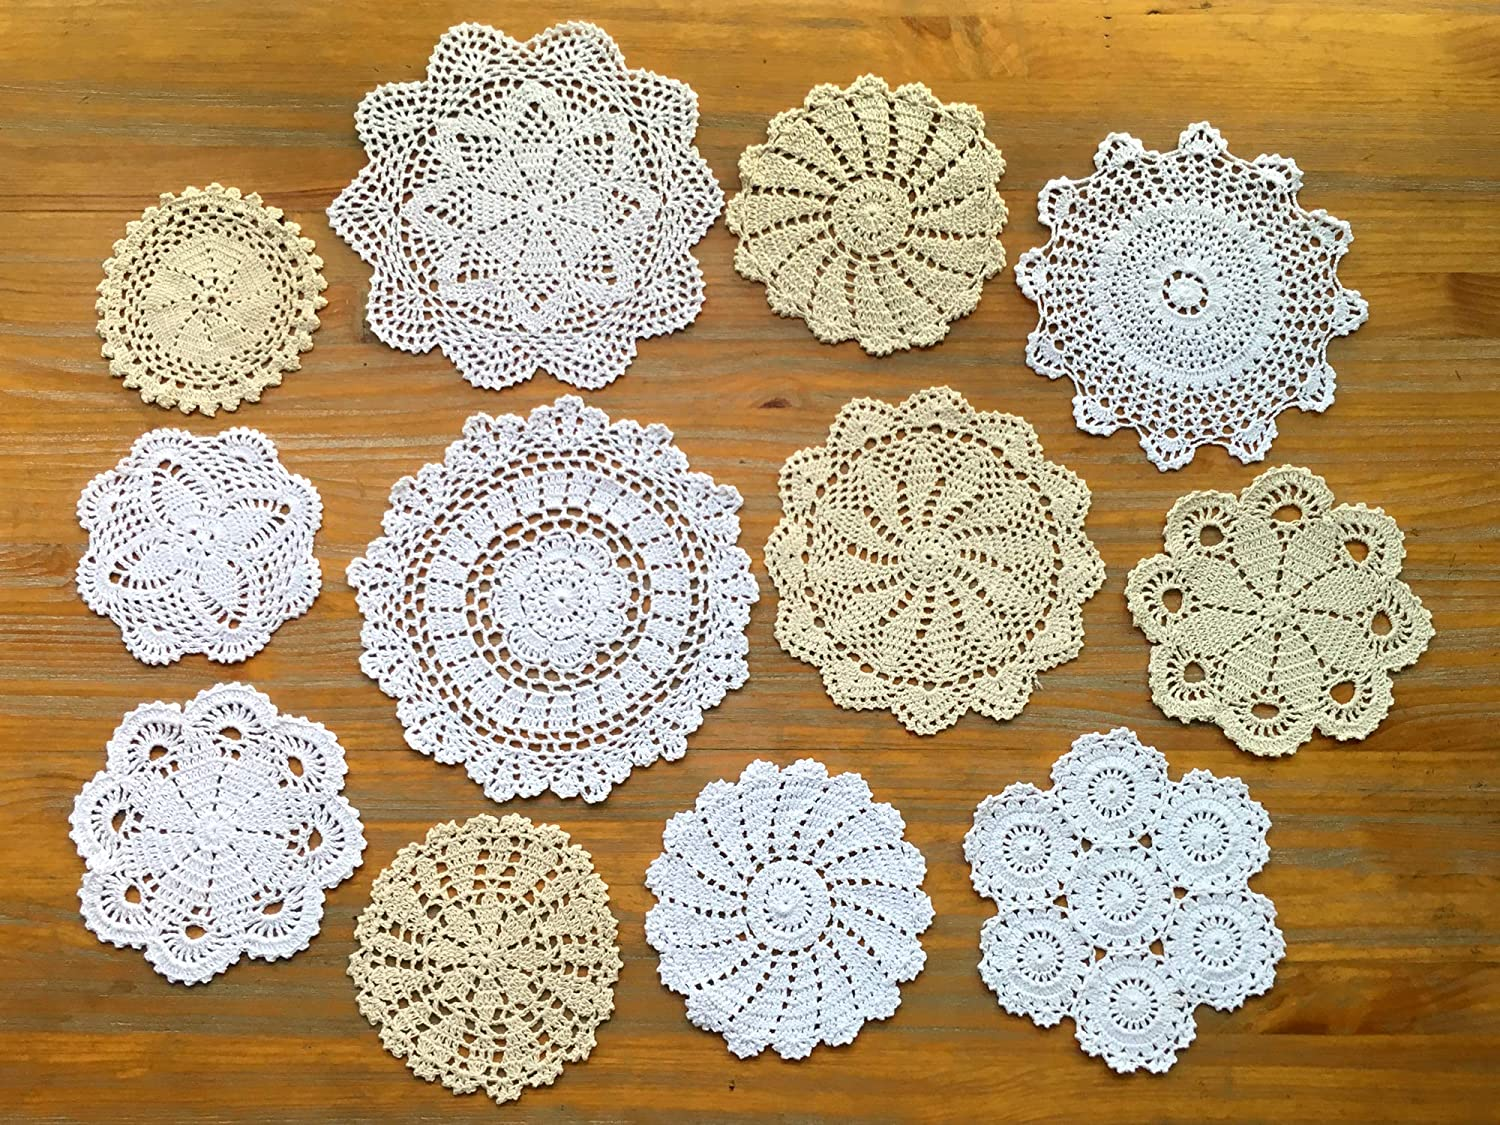 DOUKING 12Pcs Hand Crochet Lace Doilies for Table Decoration Handmade Vintage Round Lace Doilies Placemats, Varied Sizes, 5-12 Inches, Beige and White (12 PCS)